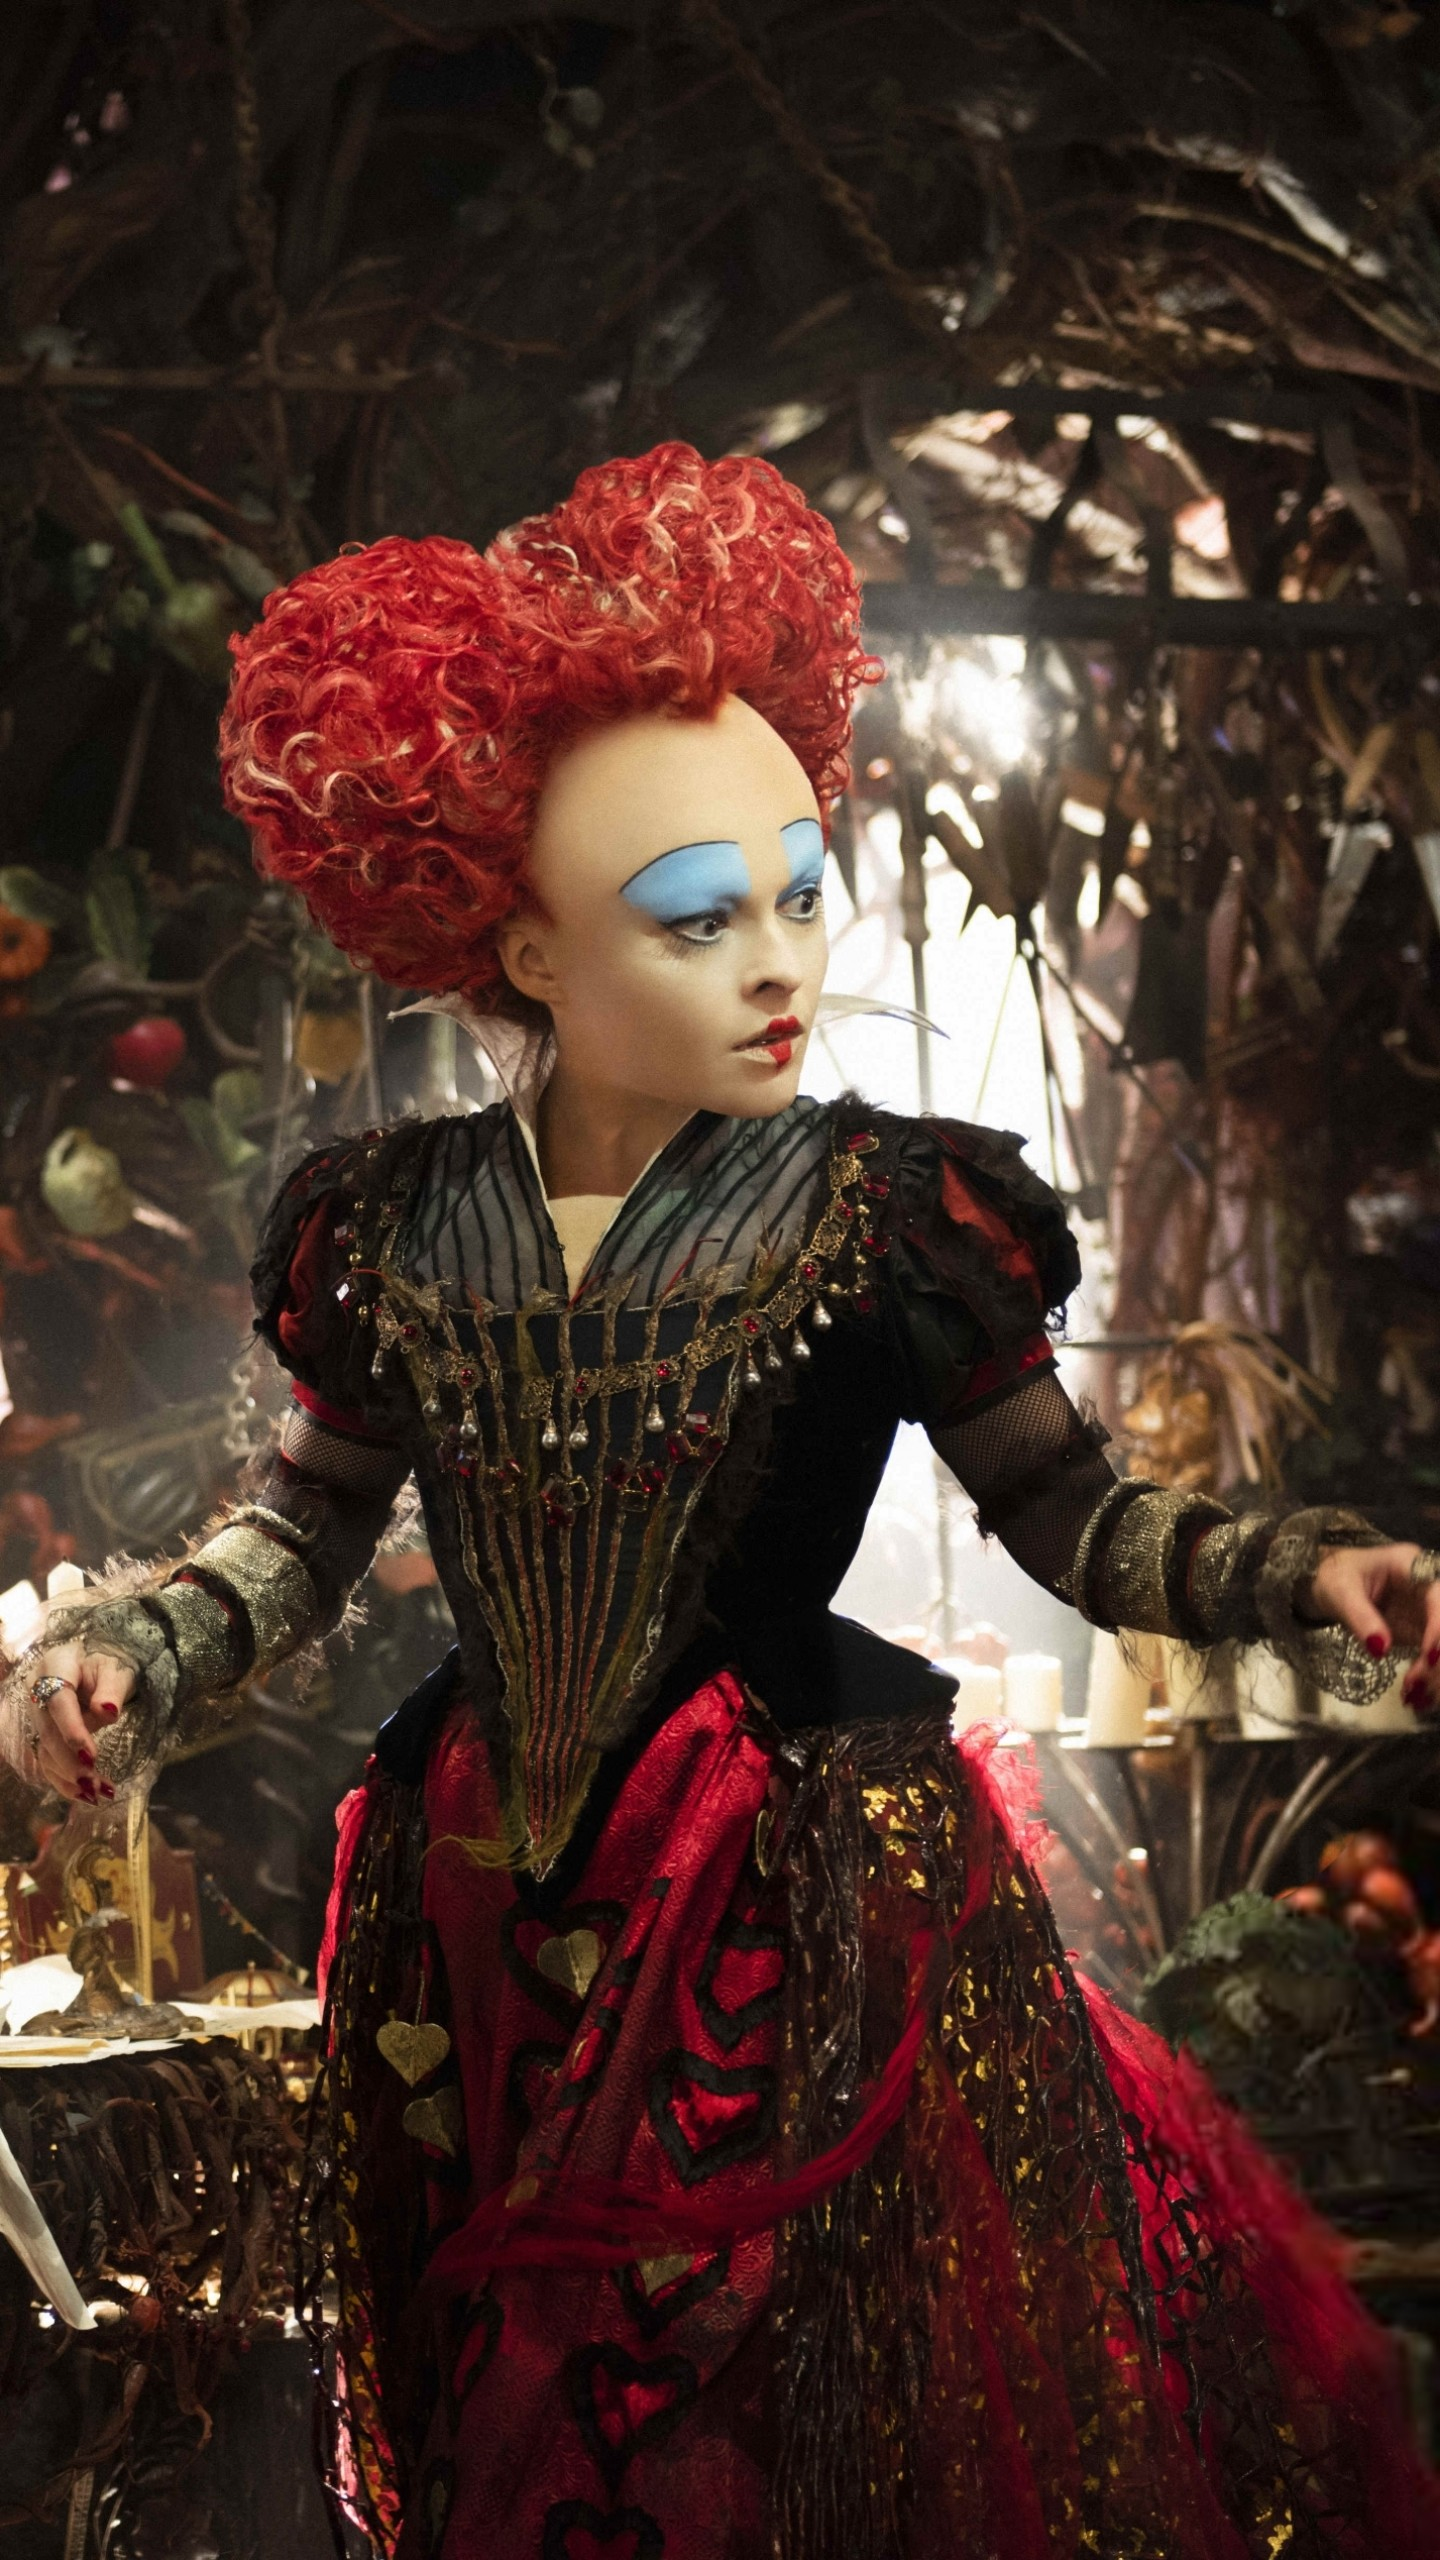 Wallpapers Cars Disney Hd Wallpaper Alice Through The Looking Glass Helena Bonham